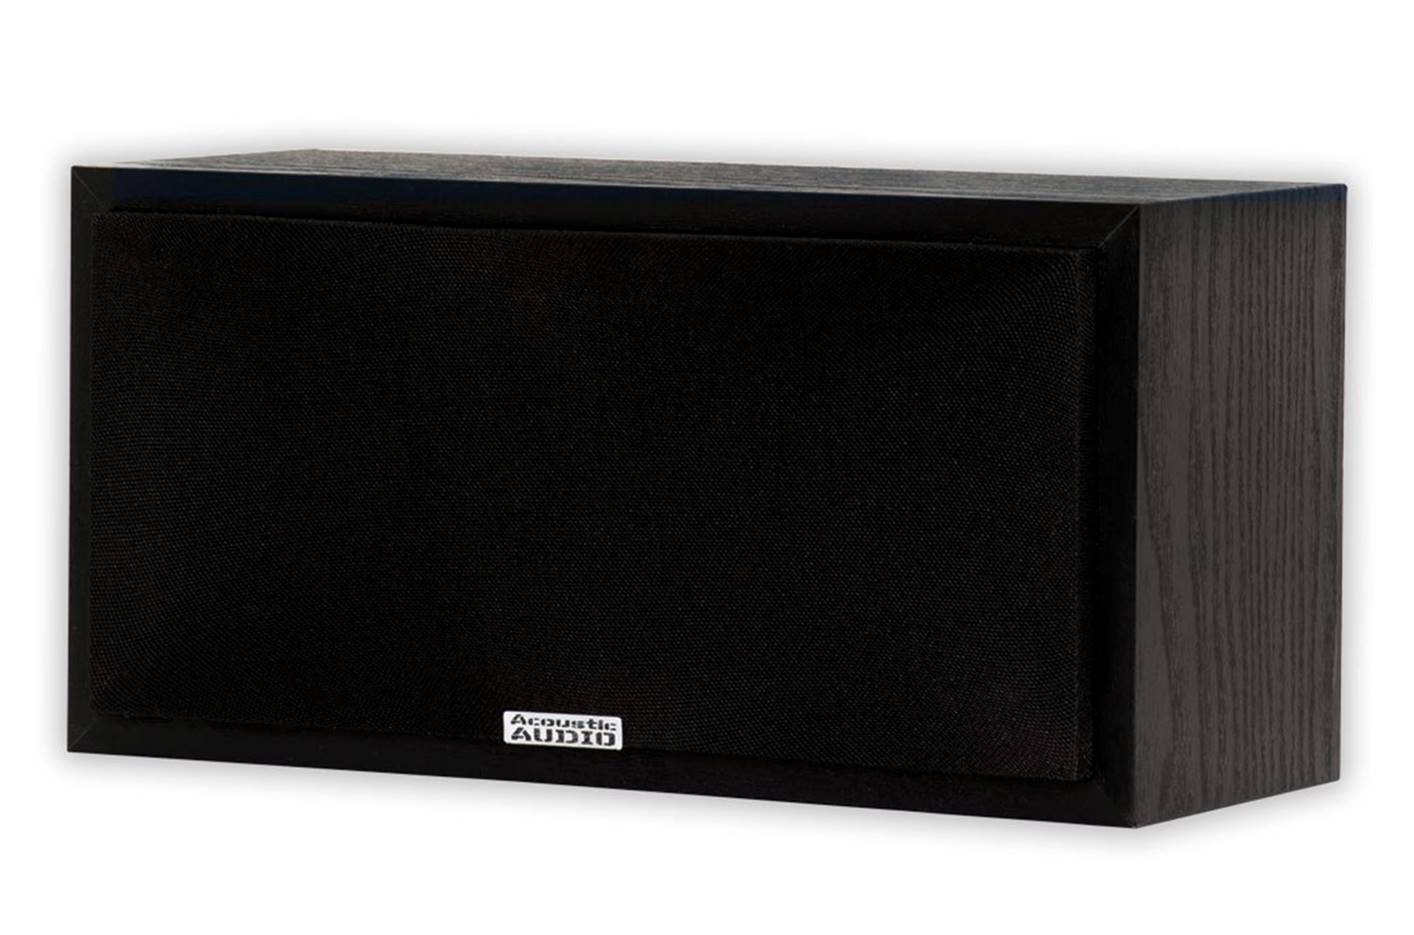 Acoustic Audio PSC-32 Center Channel Speaker